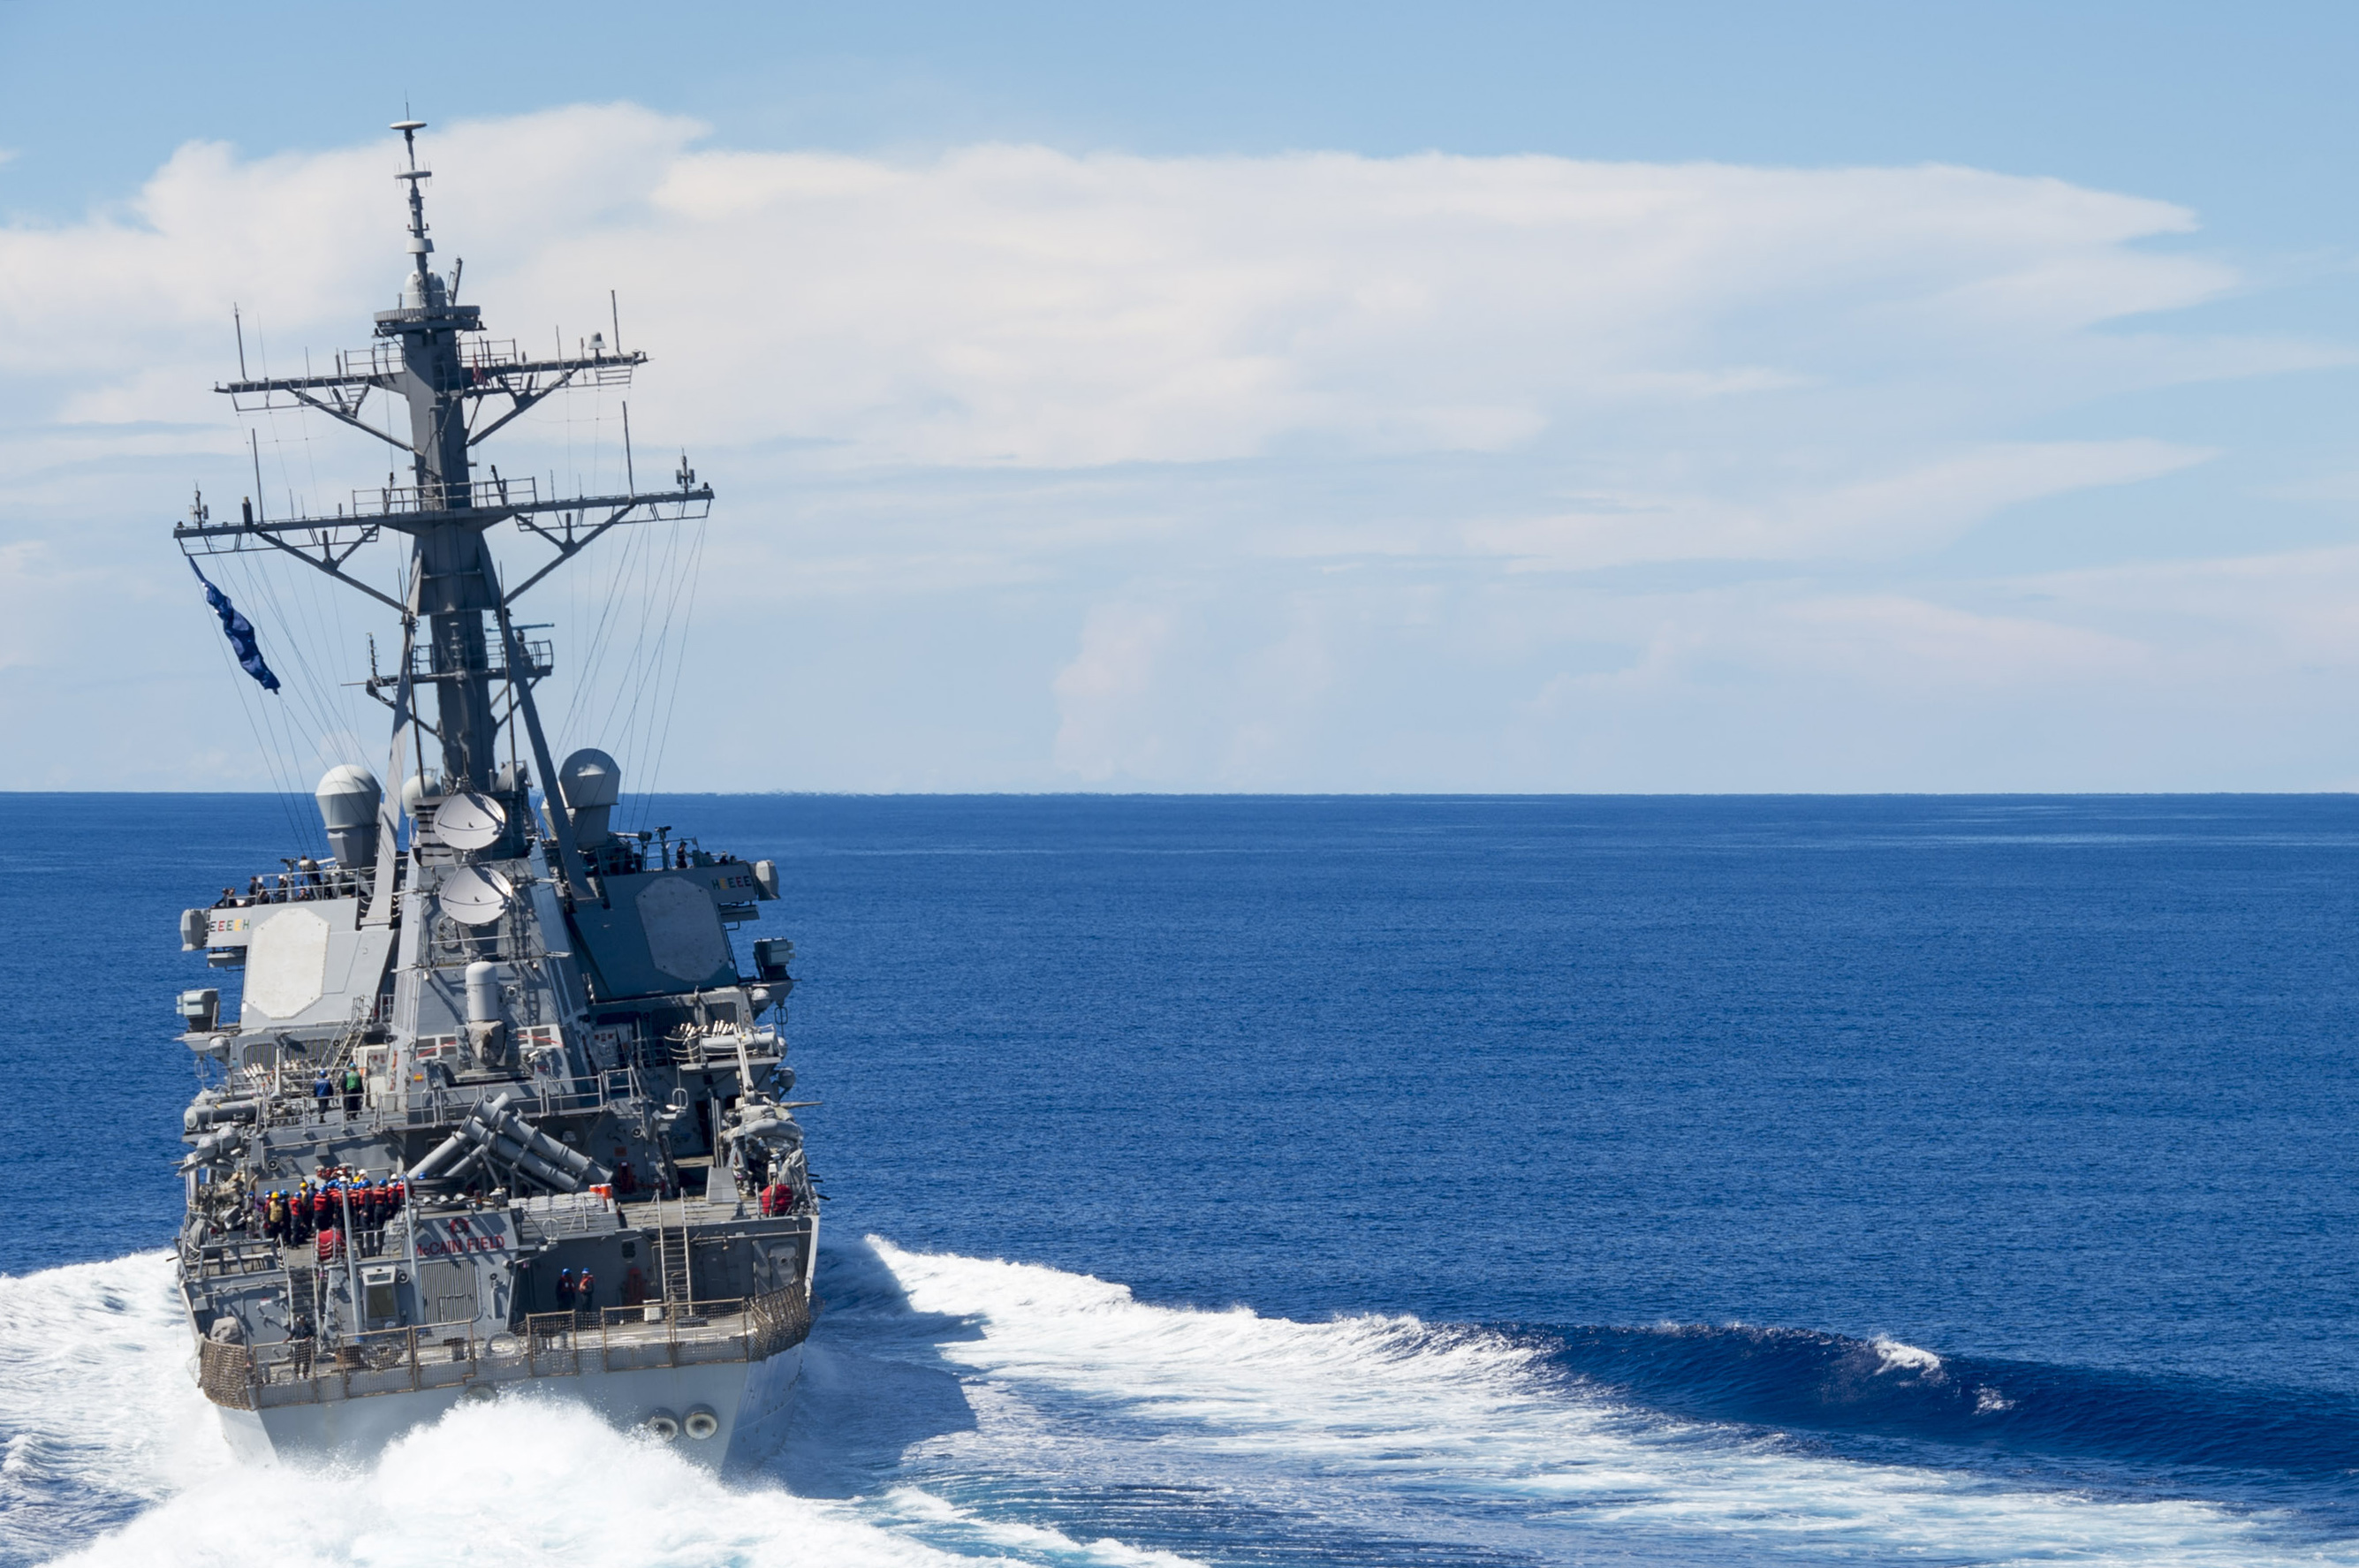 UPDATED: USS John McCain Collides with Merchant Tanker in the South China Sea; Ship Underway on its own Power - USNI News